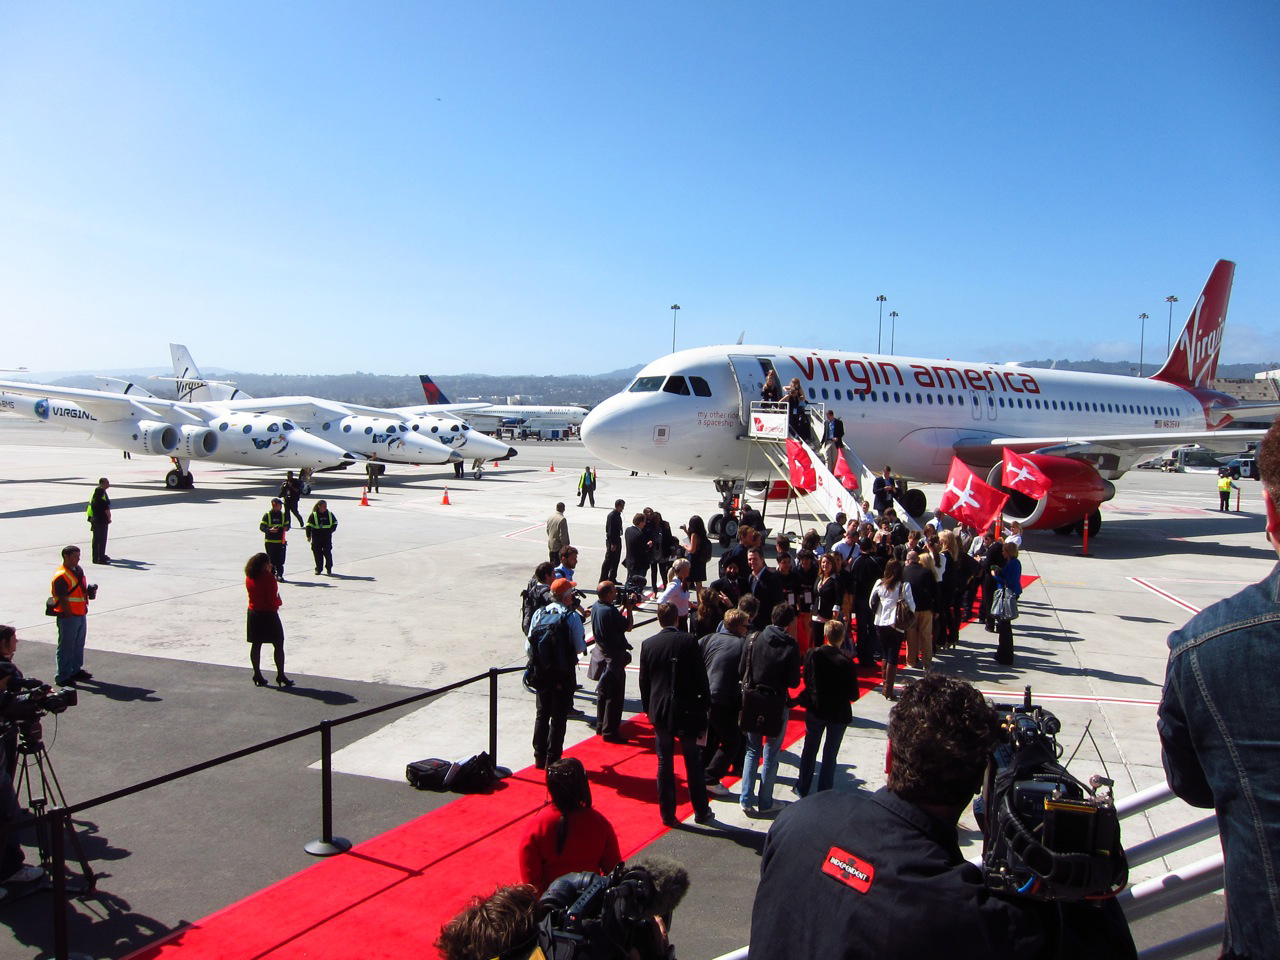 Virgin America is welcomed to its new home at SFO's Terminal 2 by Virgin Galactic's <i>WhiteKnightTwo</i> and a gaggle of press.